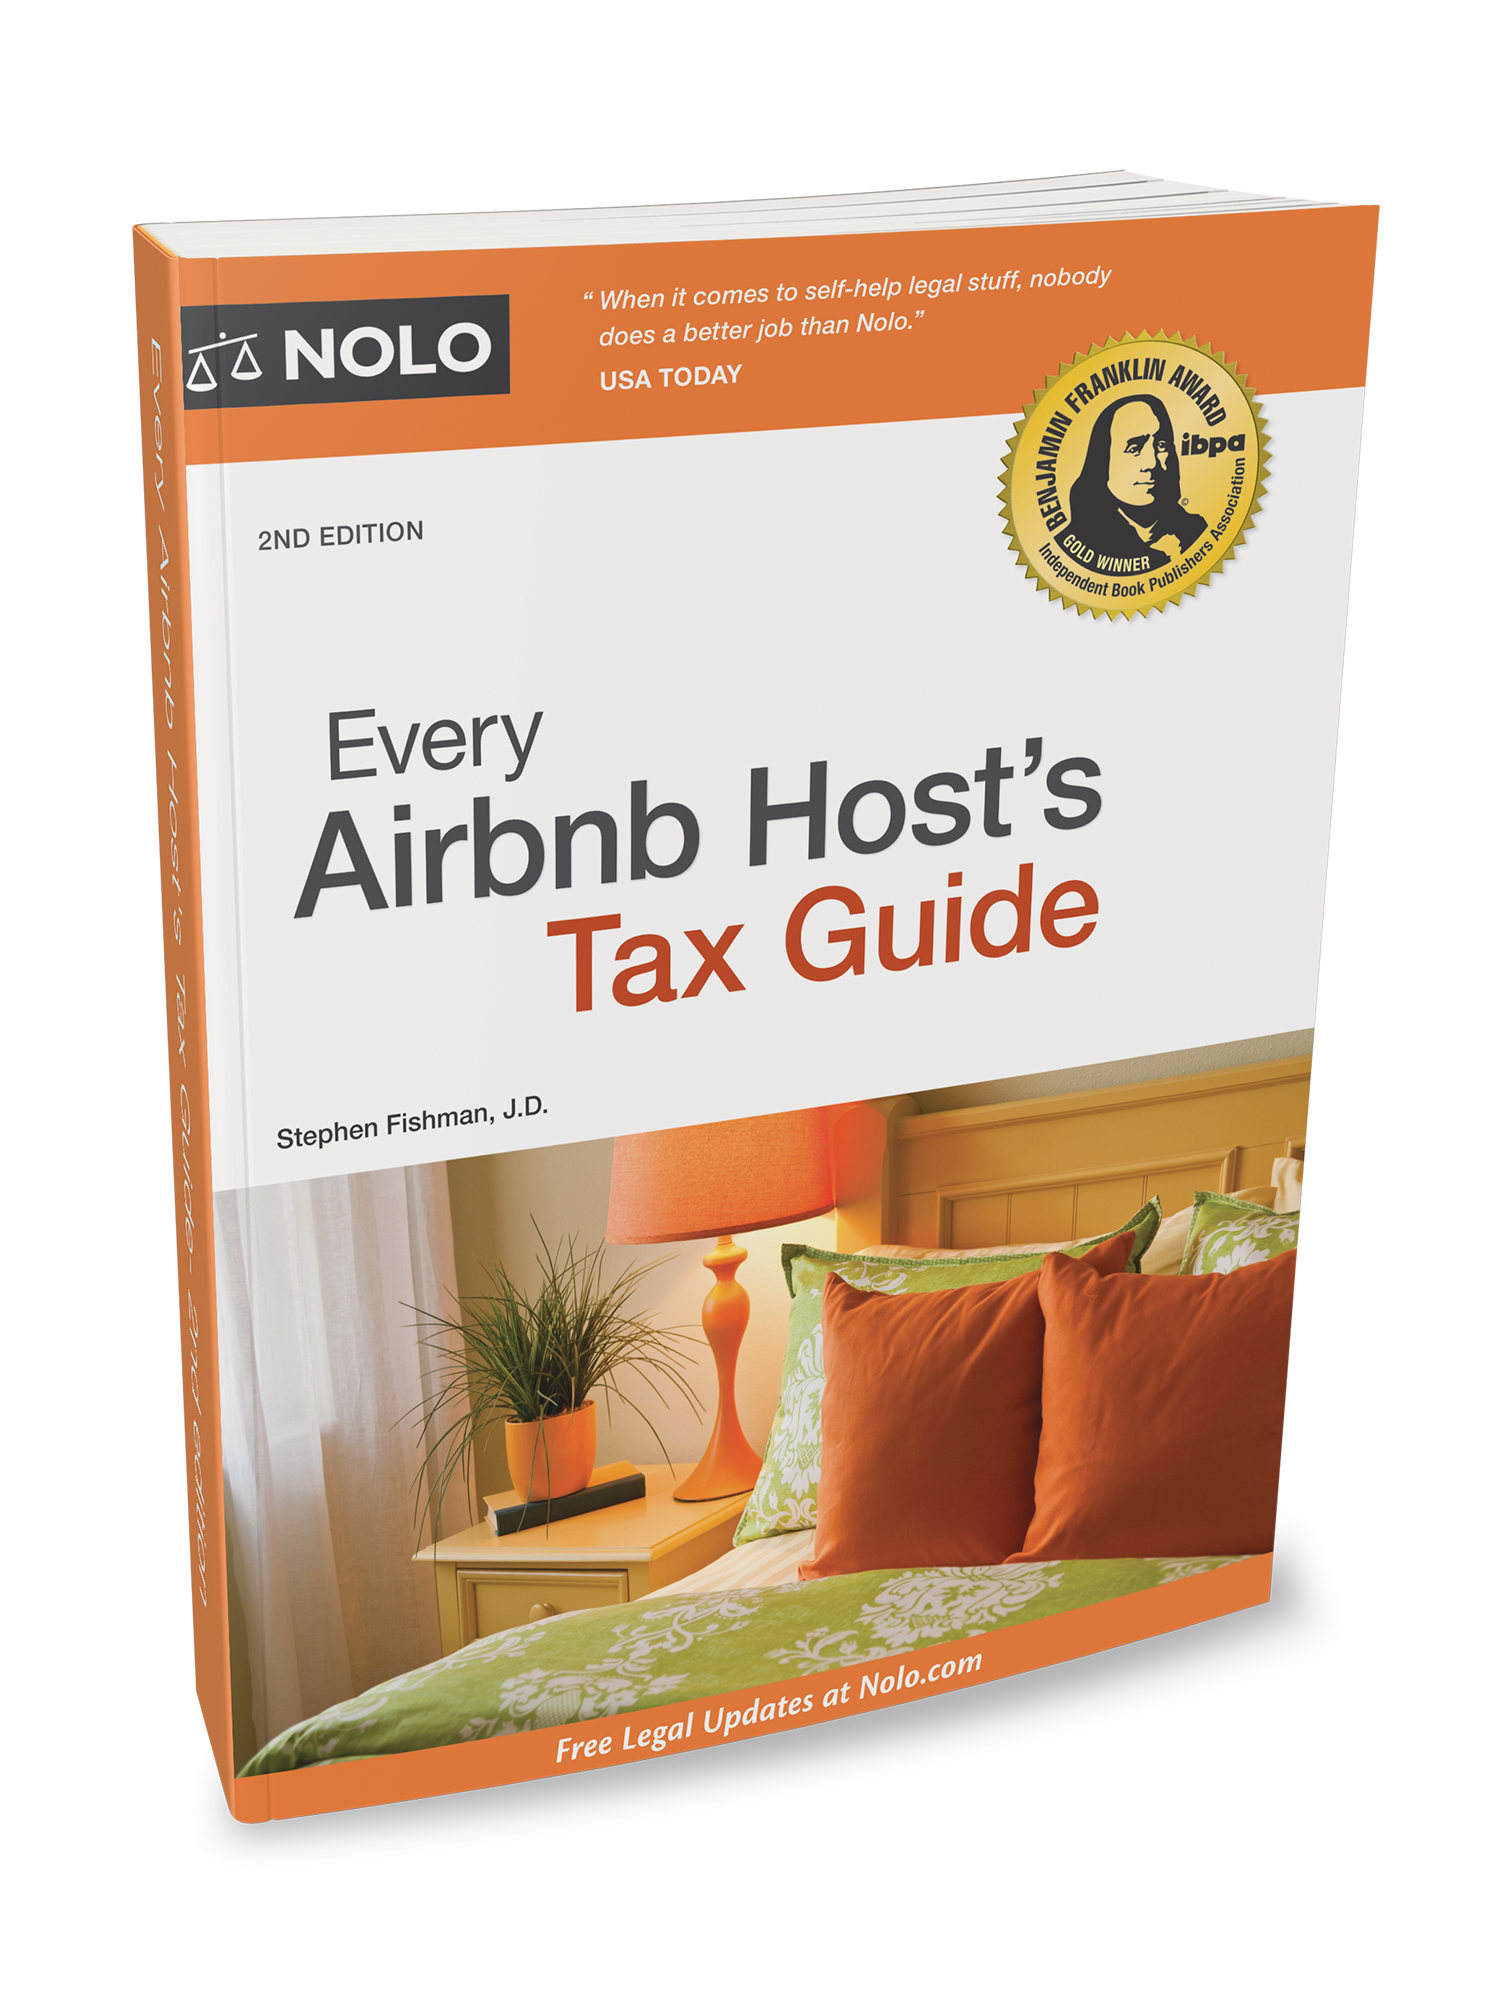 Every Airbnb Host's Tax Guide (2nd edition) - #4755